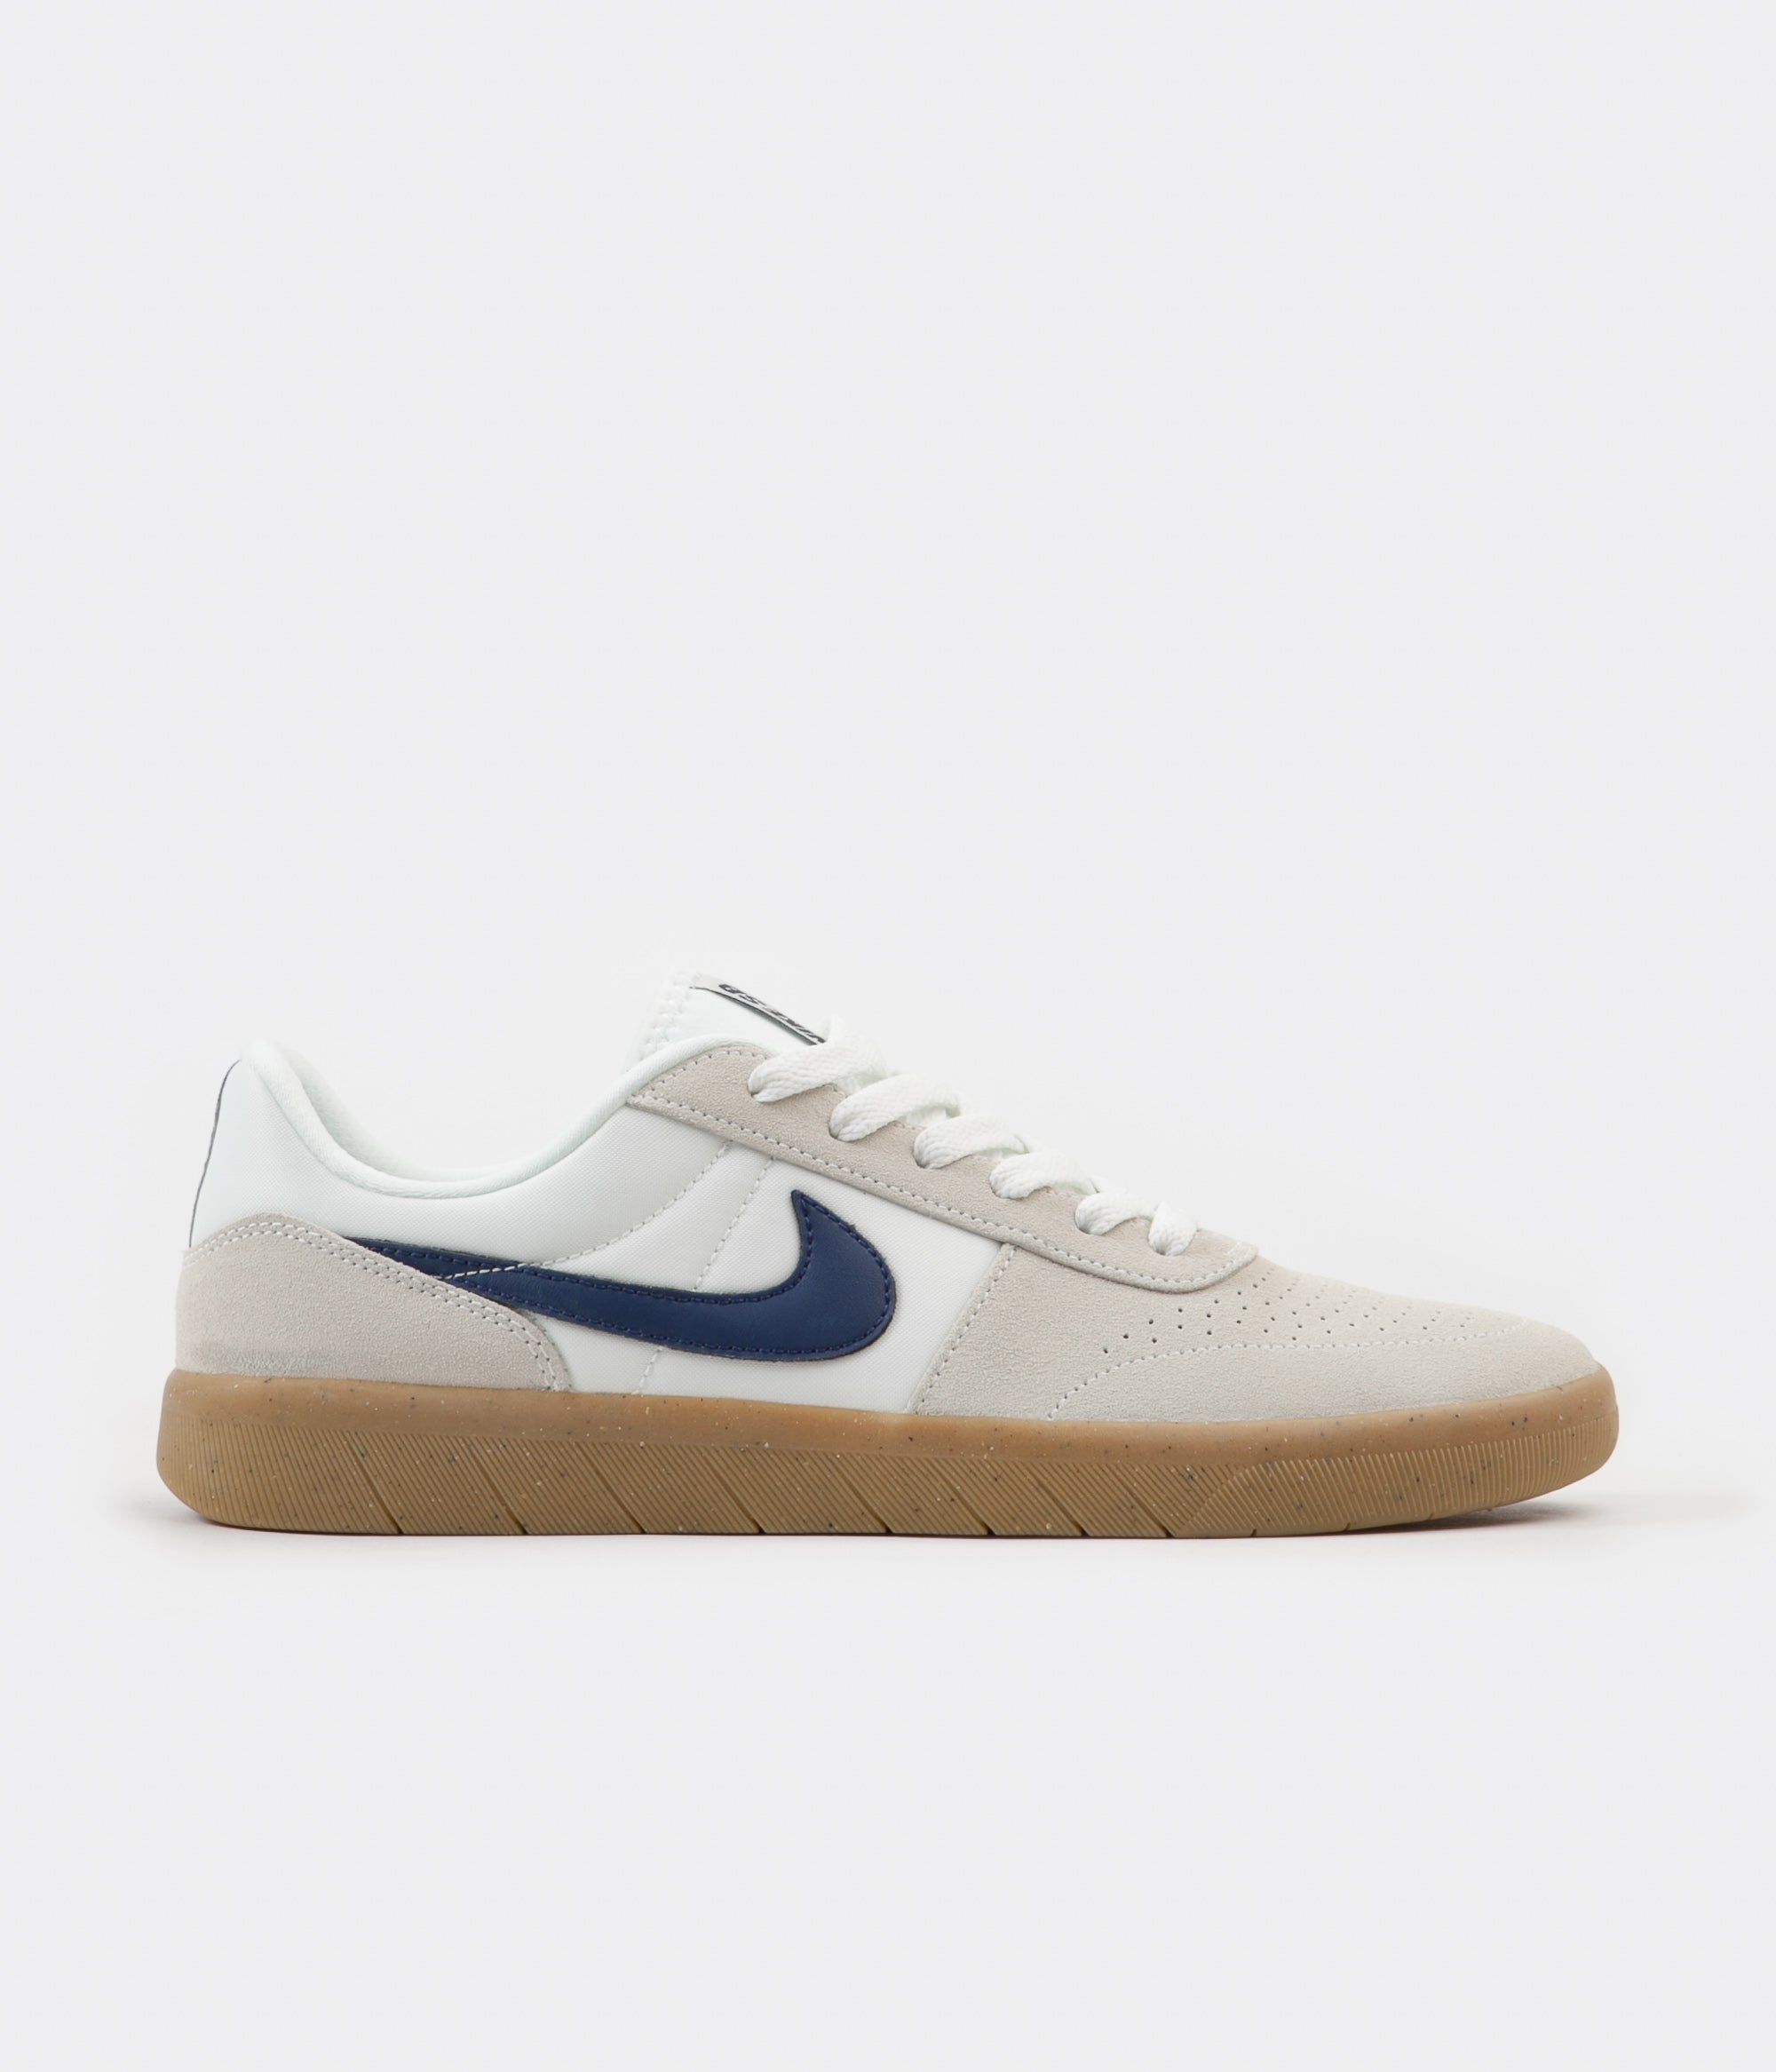 5bdf012ba65d Nike SB Team Classic Shoes - Summit White   Blue Void - White